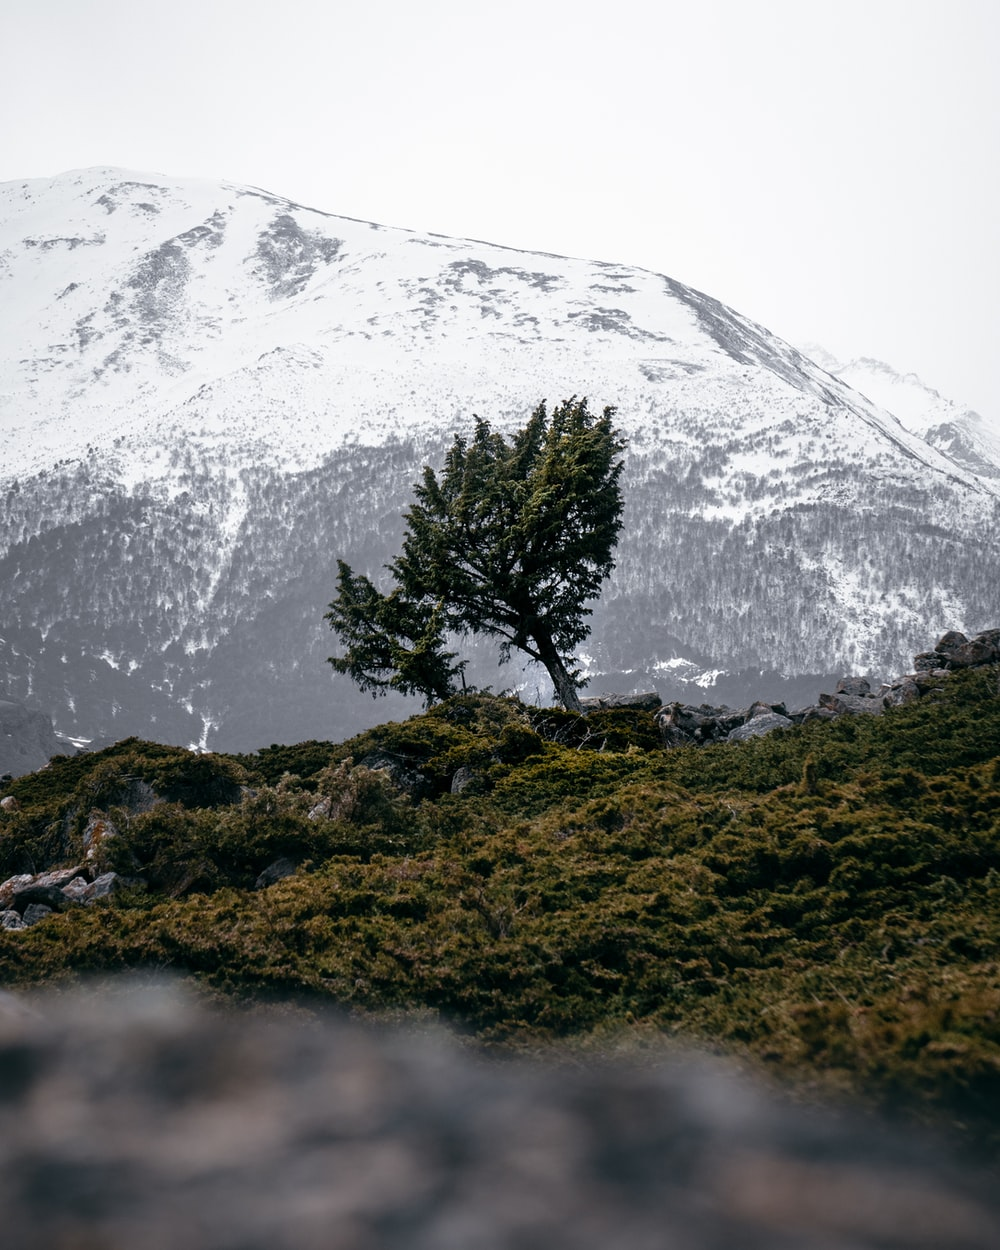 green tree on green grass field near snow covered mountain during daytime